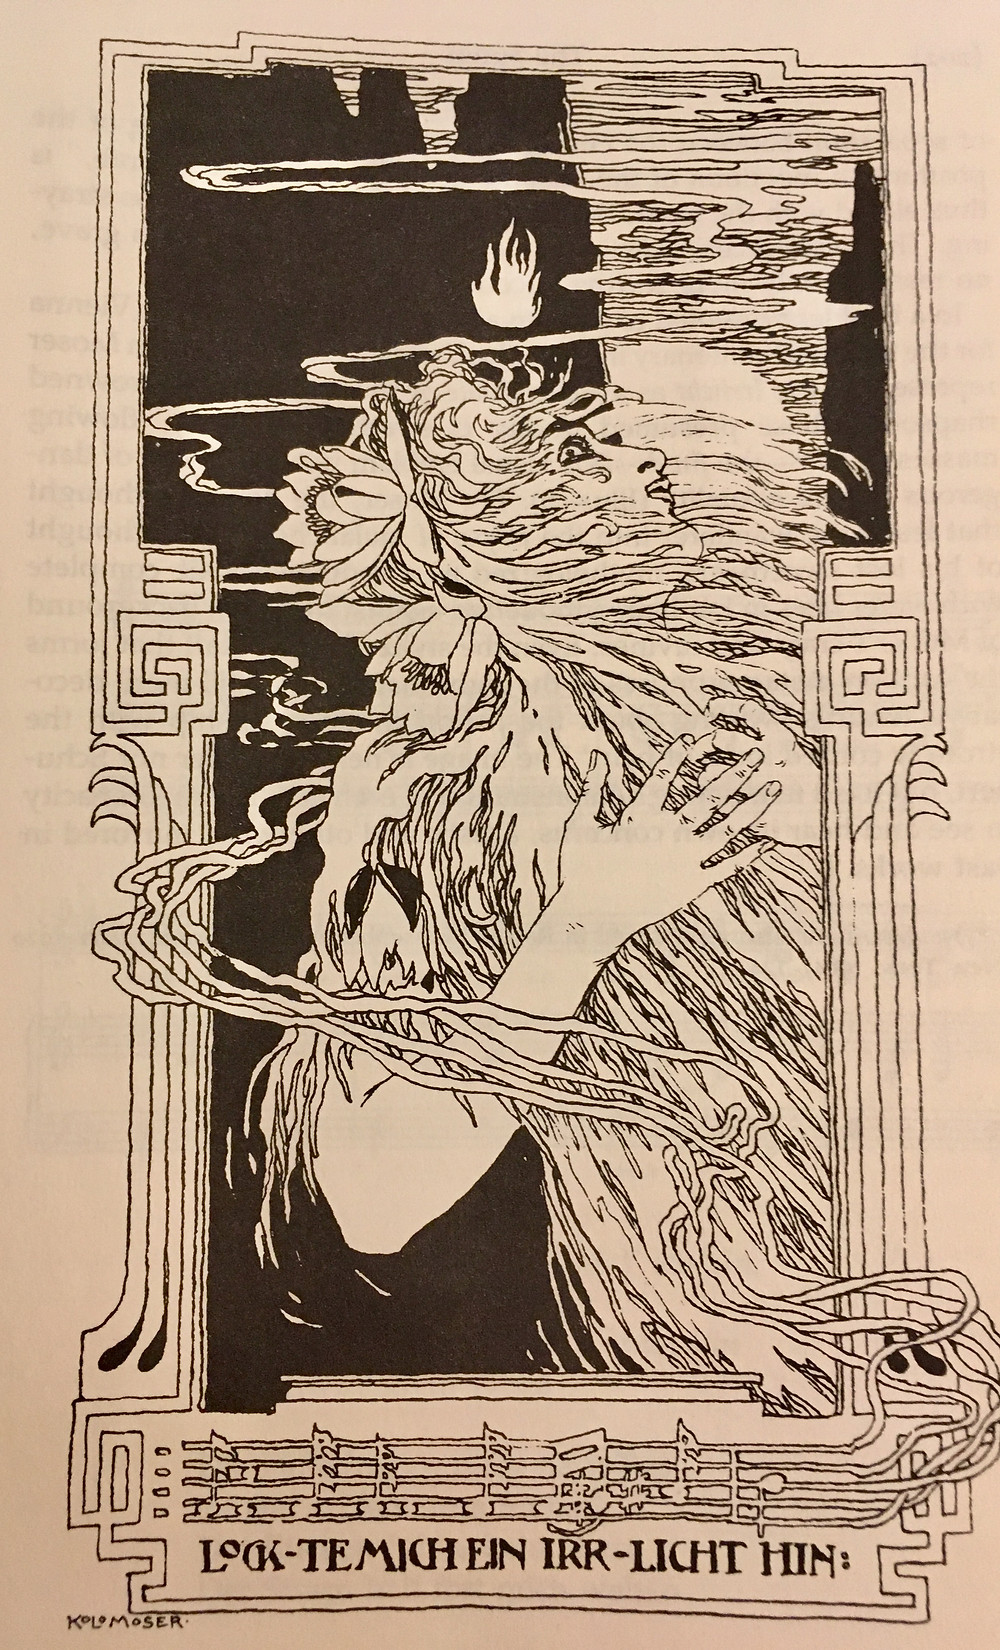 Moser's expressionist illustration of Schubert's song